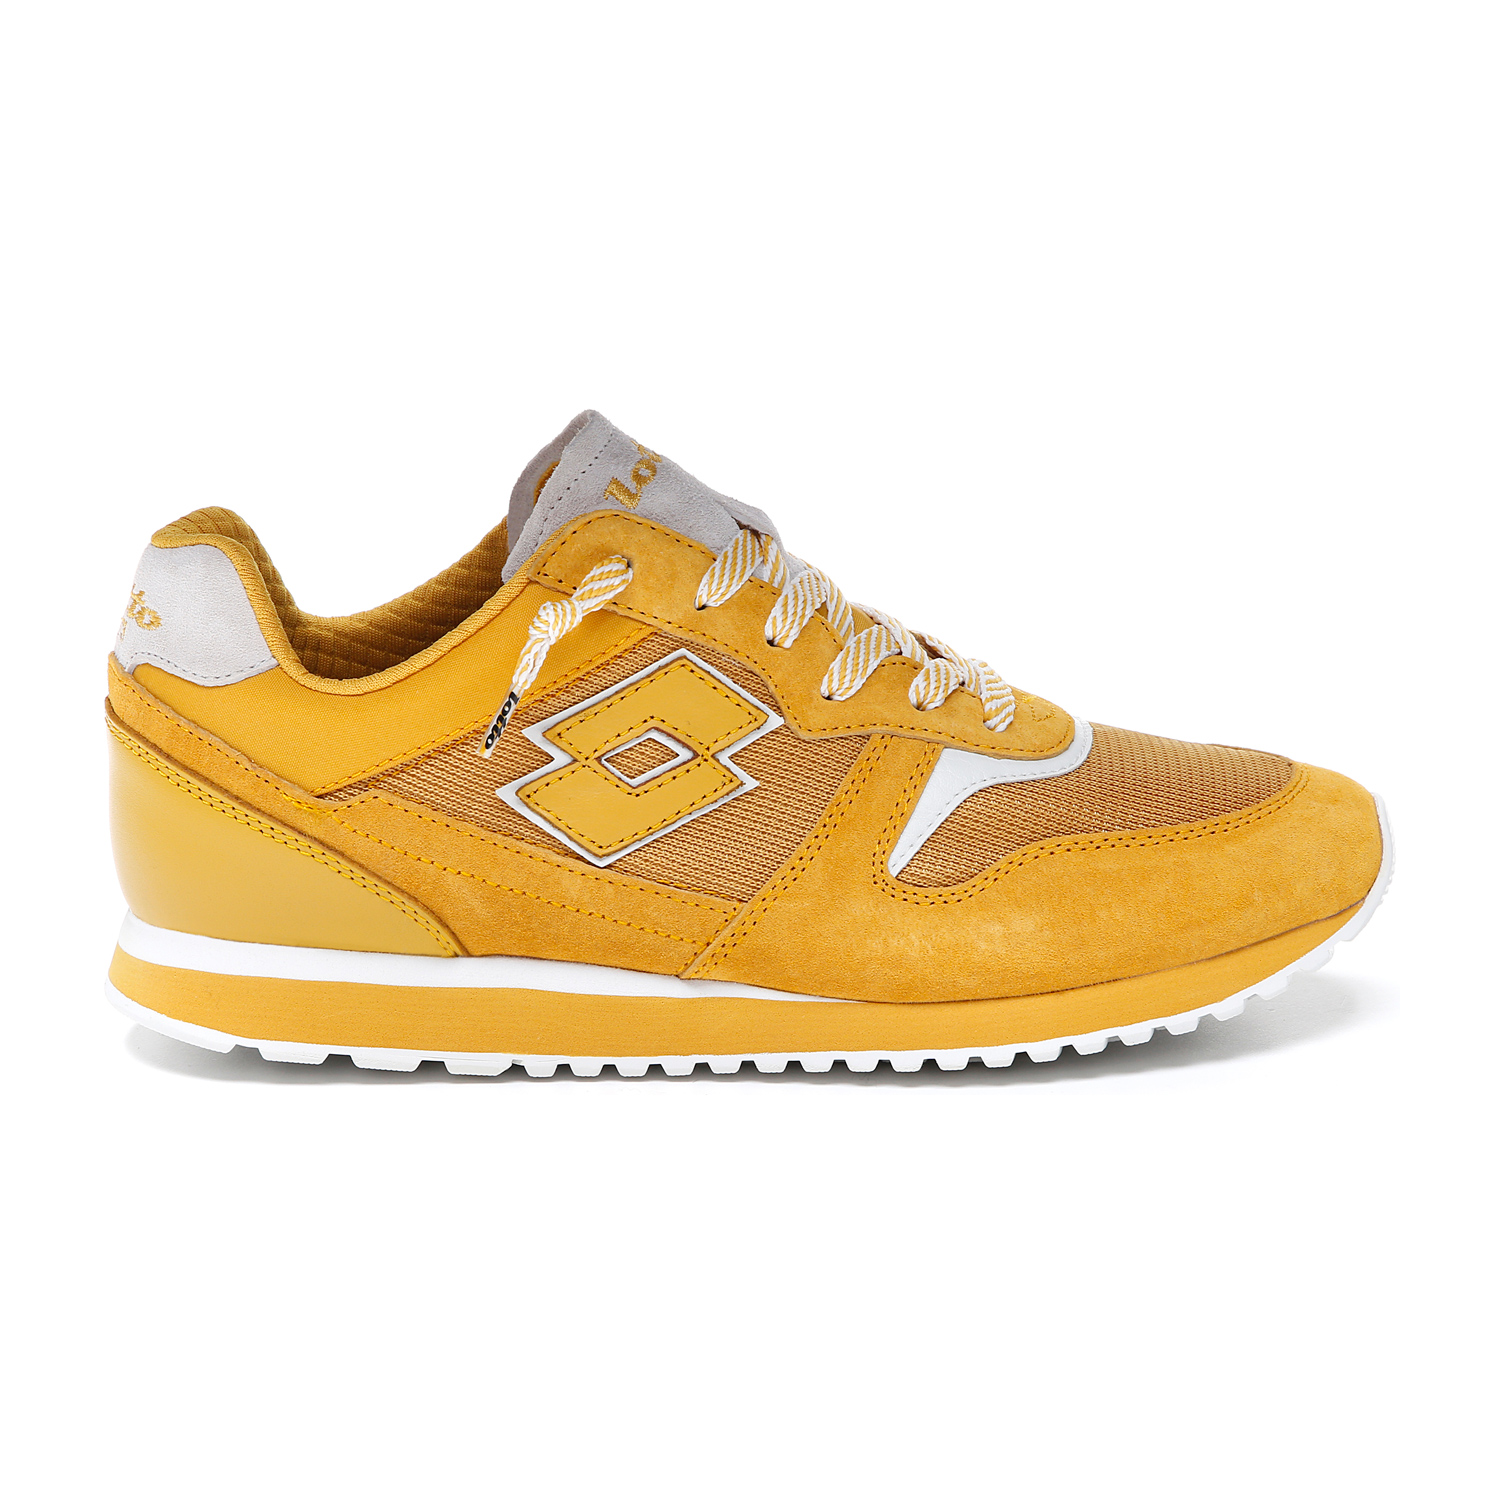 d5209e018 Lotto Sport Italia - Footwear, clothing and accessories for sport ...